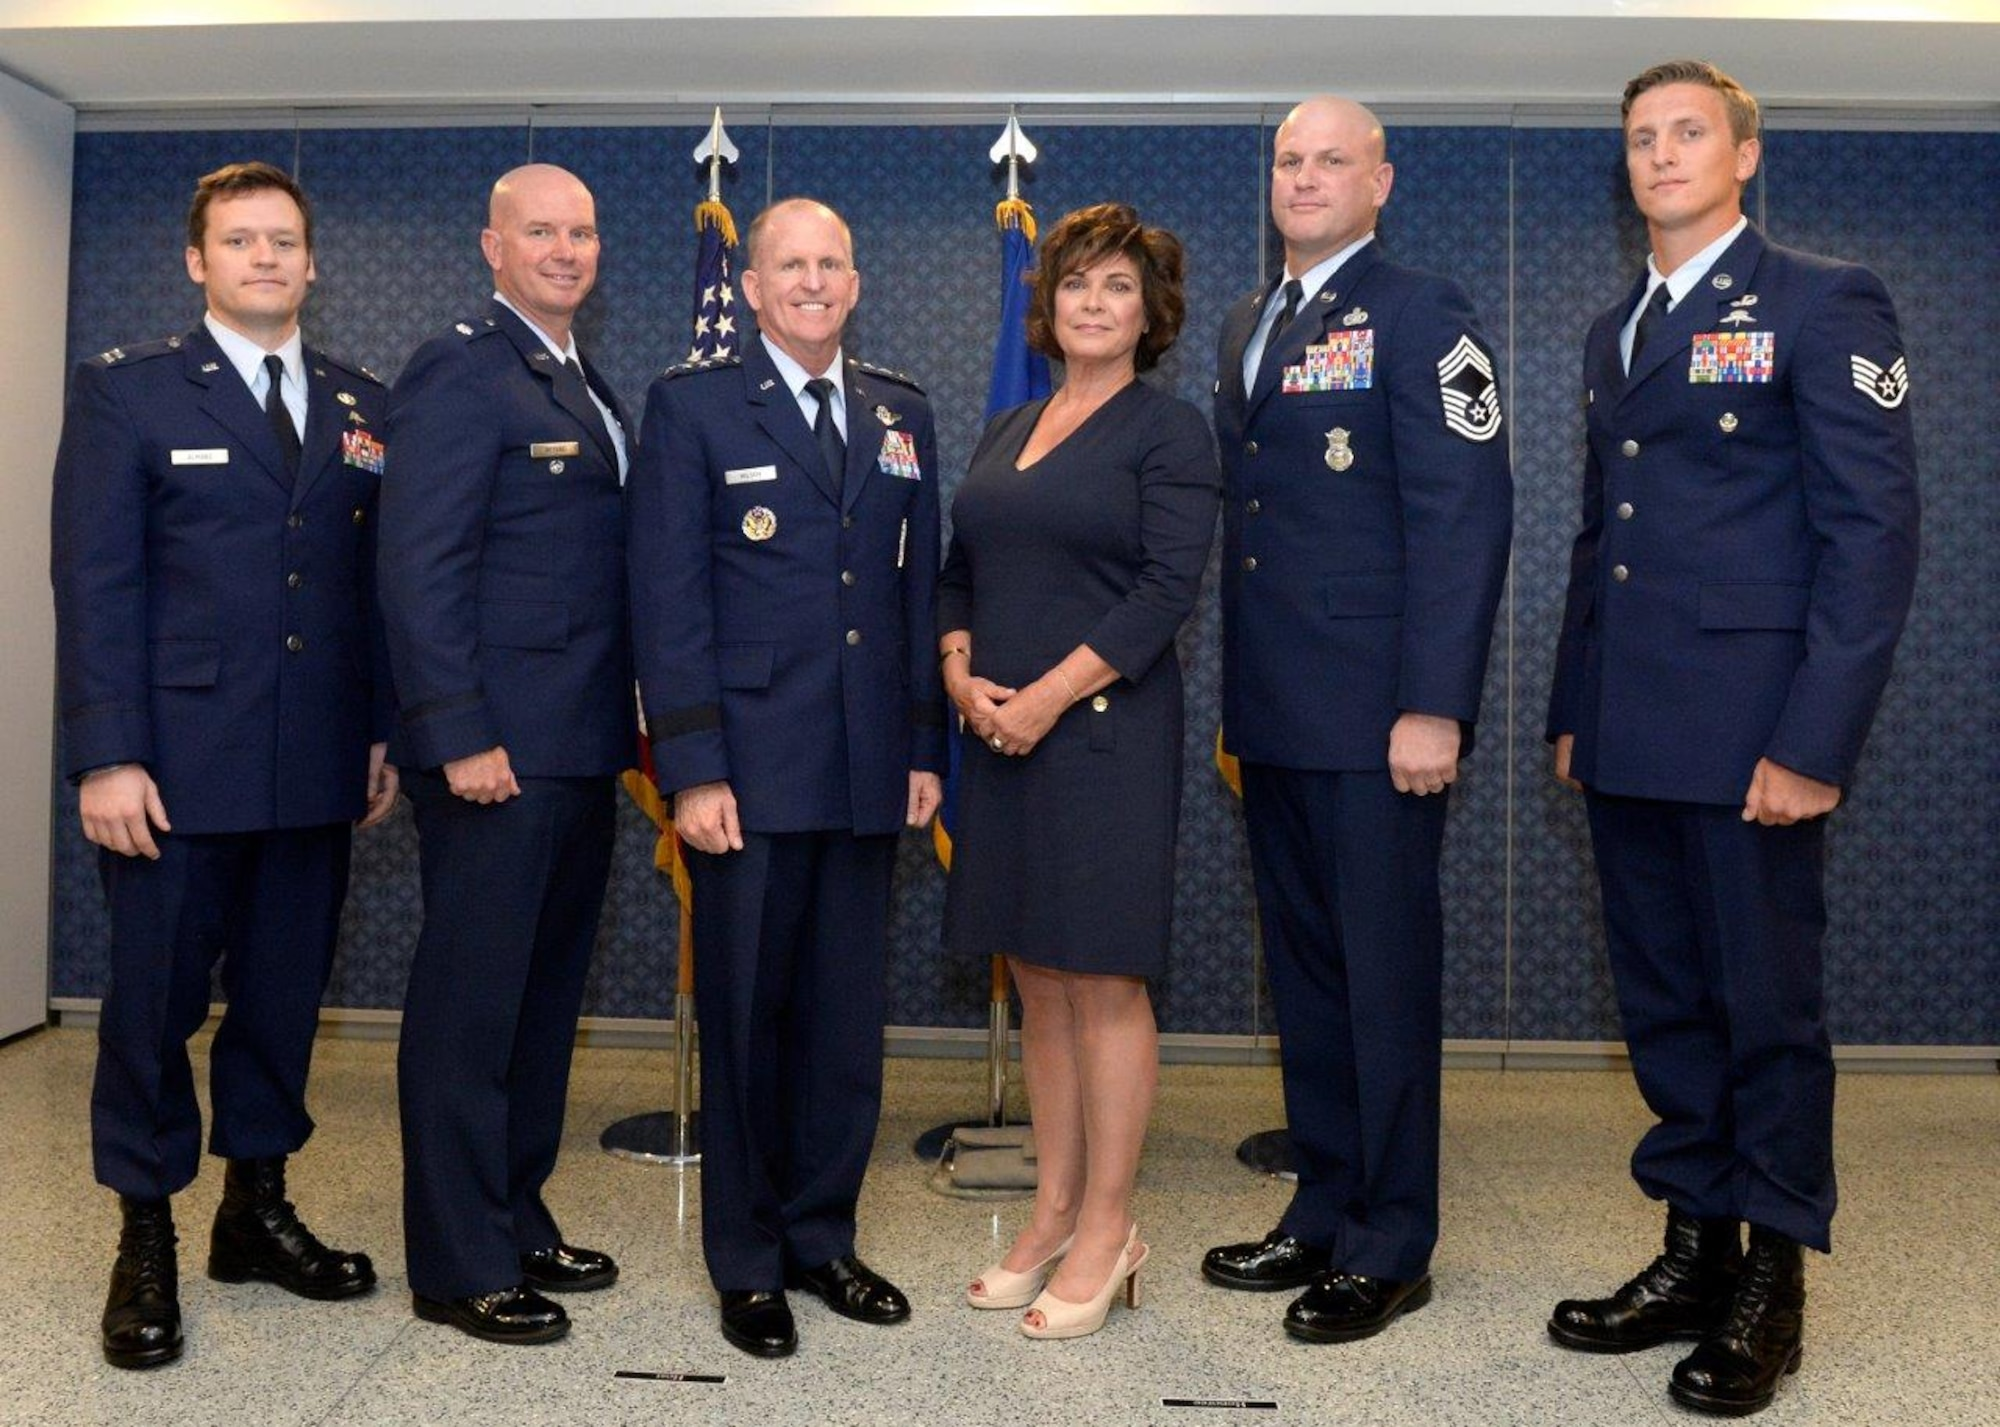 Air Force Vice Chief of Staff Gen. Stephen W. Wilson and Janine Sijan Rozina, Lance P. Sijan's sister, poses for a photo with the 2016 Lance P. Sijan U.S. Air Force Leadership Award winners in the Pentagon, Arlington, Va., Oct. 5, 2017. Sijan was shot down over Vietnam, Nov. 9, 1967, and evaded capture for 45 days despite severe injuries. He later died while in a Vietnamese prisoner-of-war camp and was presented the Medal of Honor posthumously for heroism. (U.S. Air Force photo by Staff Sgt. Rusty Frank)